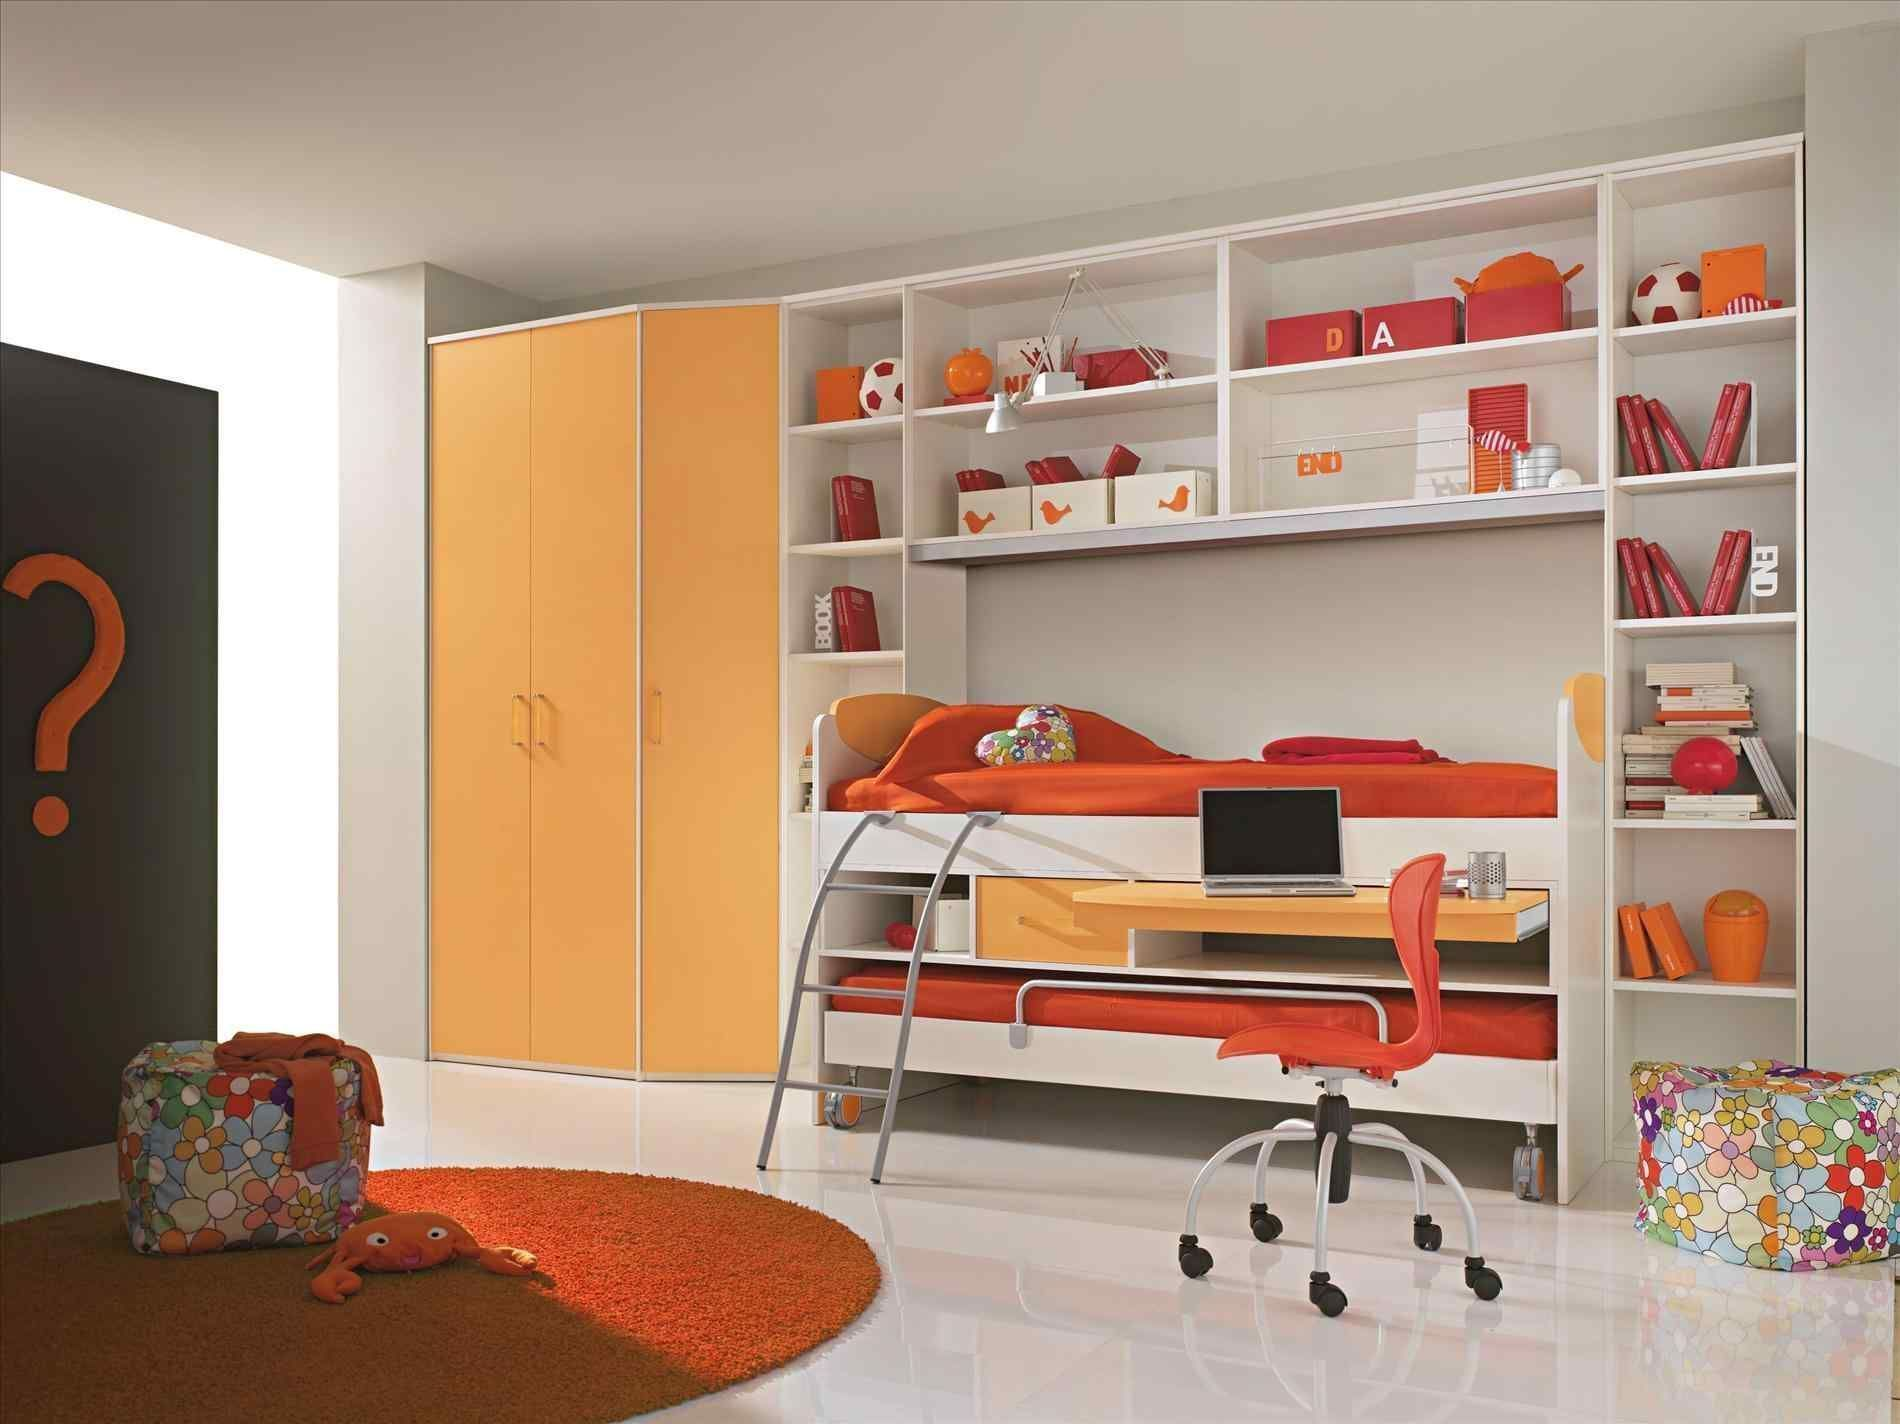 Loft bed plans with desk and shelves  Cool Bunk Bed Ideas Pictures amazing fancy designs for bedroom with